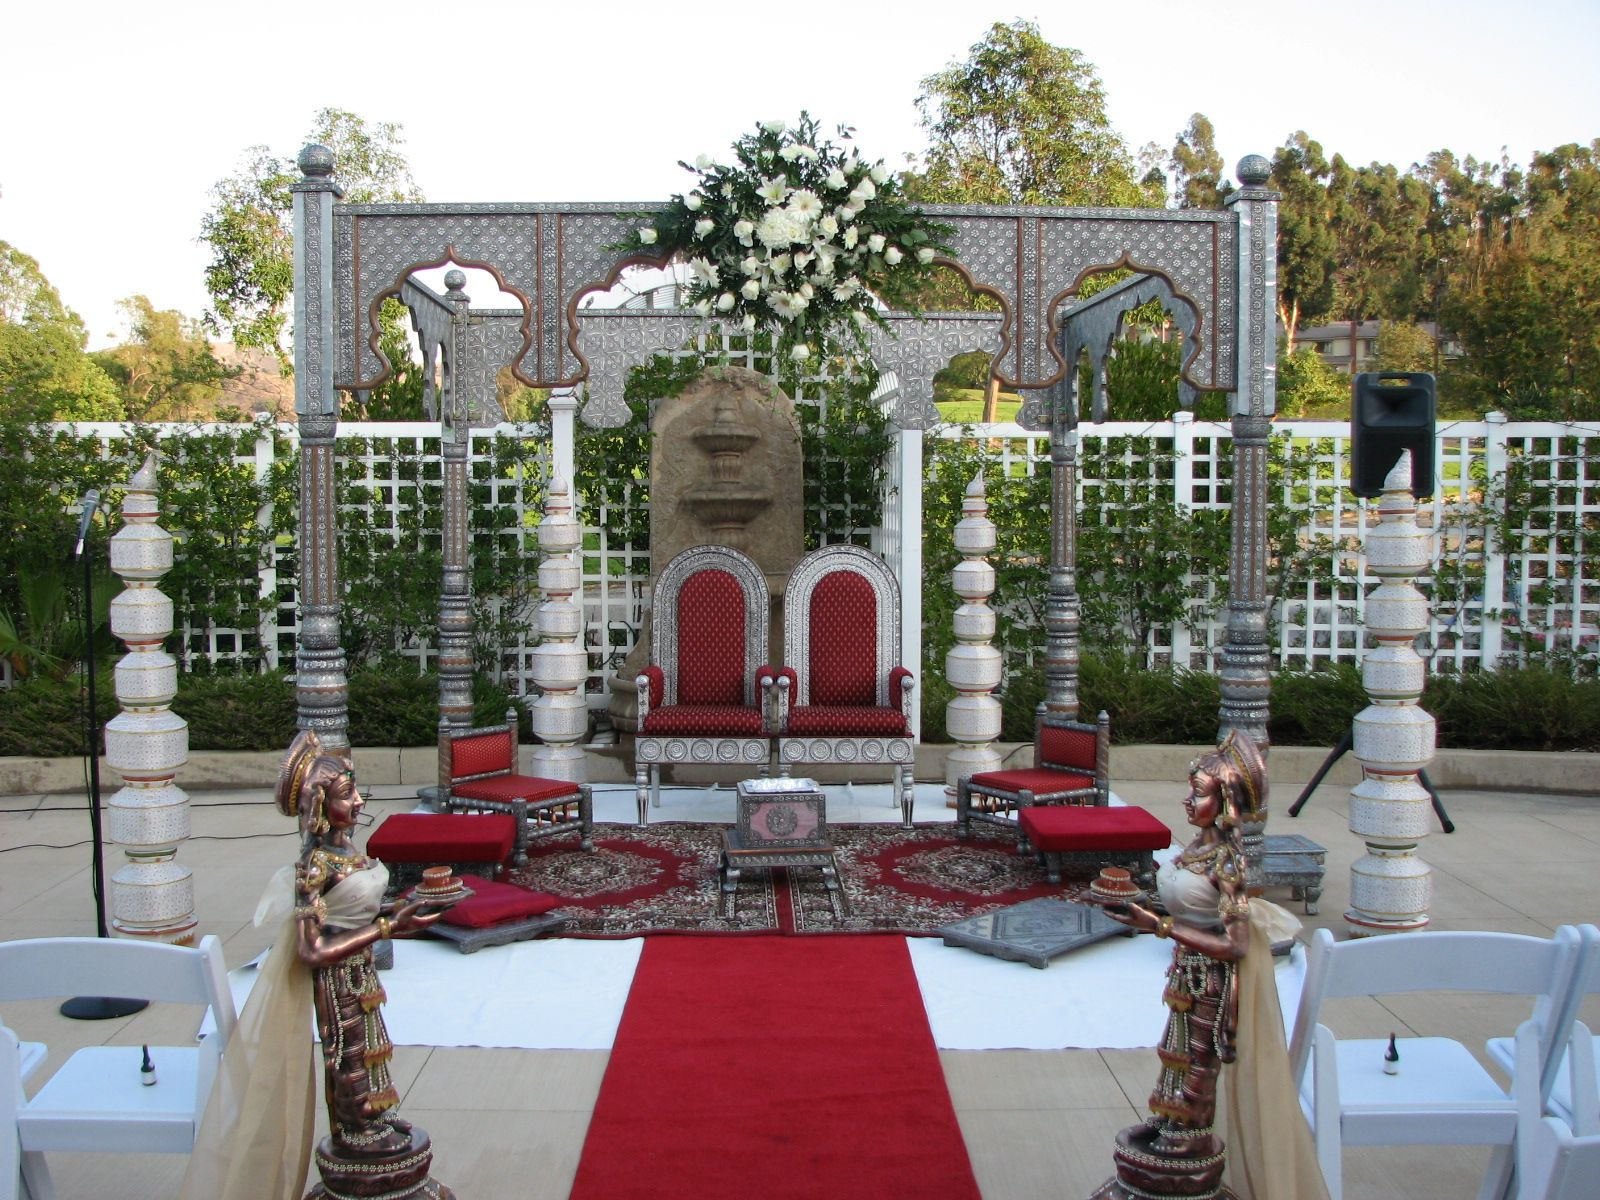 153 best wedding ceremonies decor images on pinterest indian 153 best wedding ceremonies decor images on pinterest indian bridal indian weddings and decor wedding junglespirit Image collections